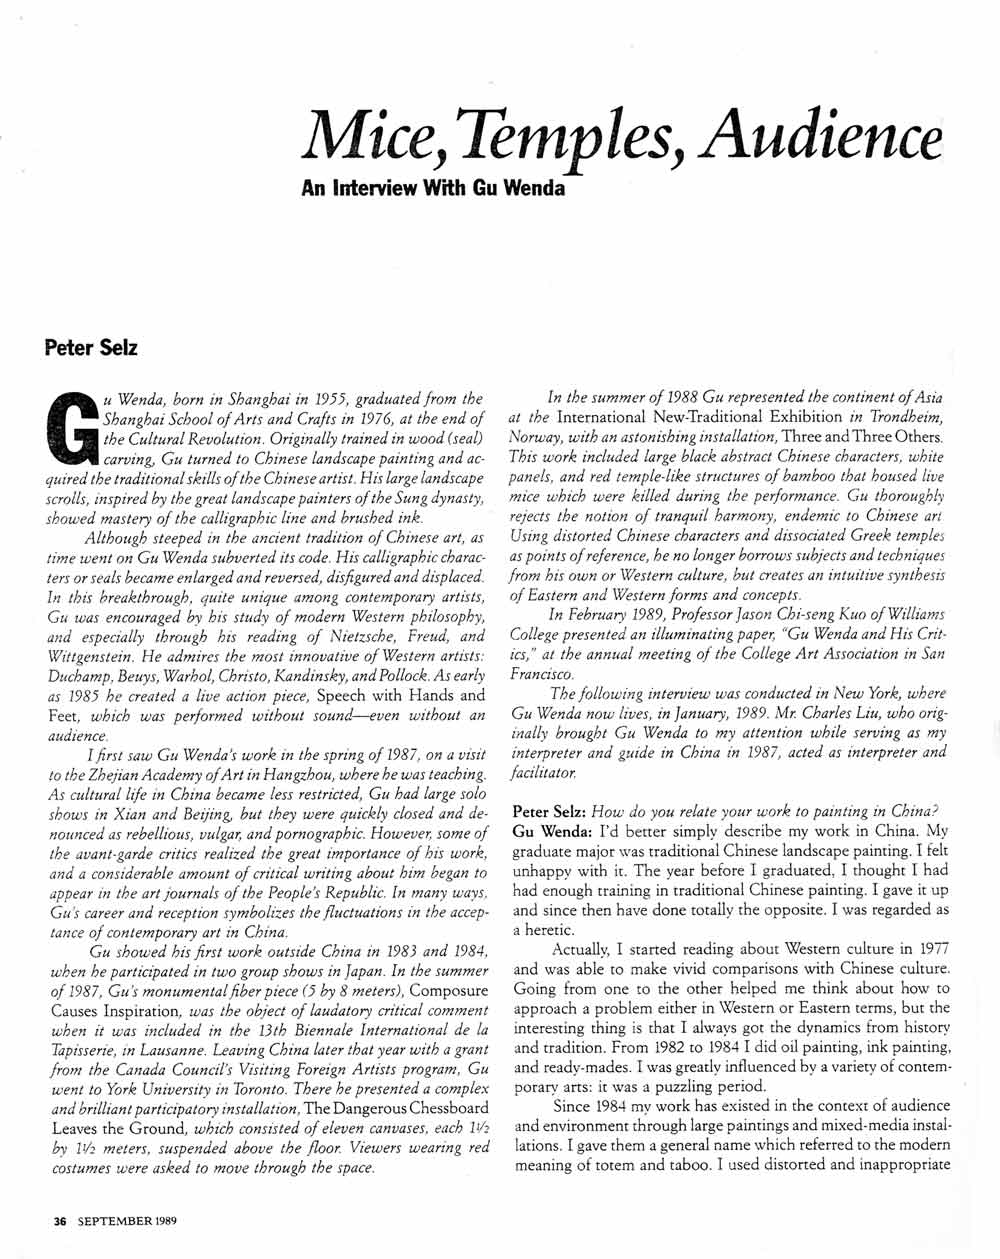 Mice, Temples, Audience, pg 1